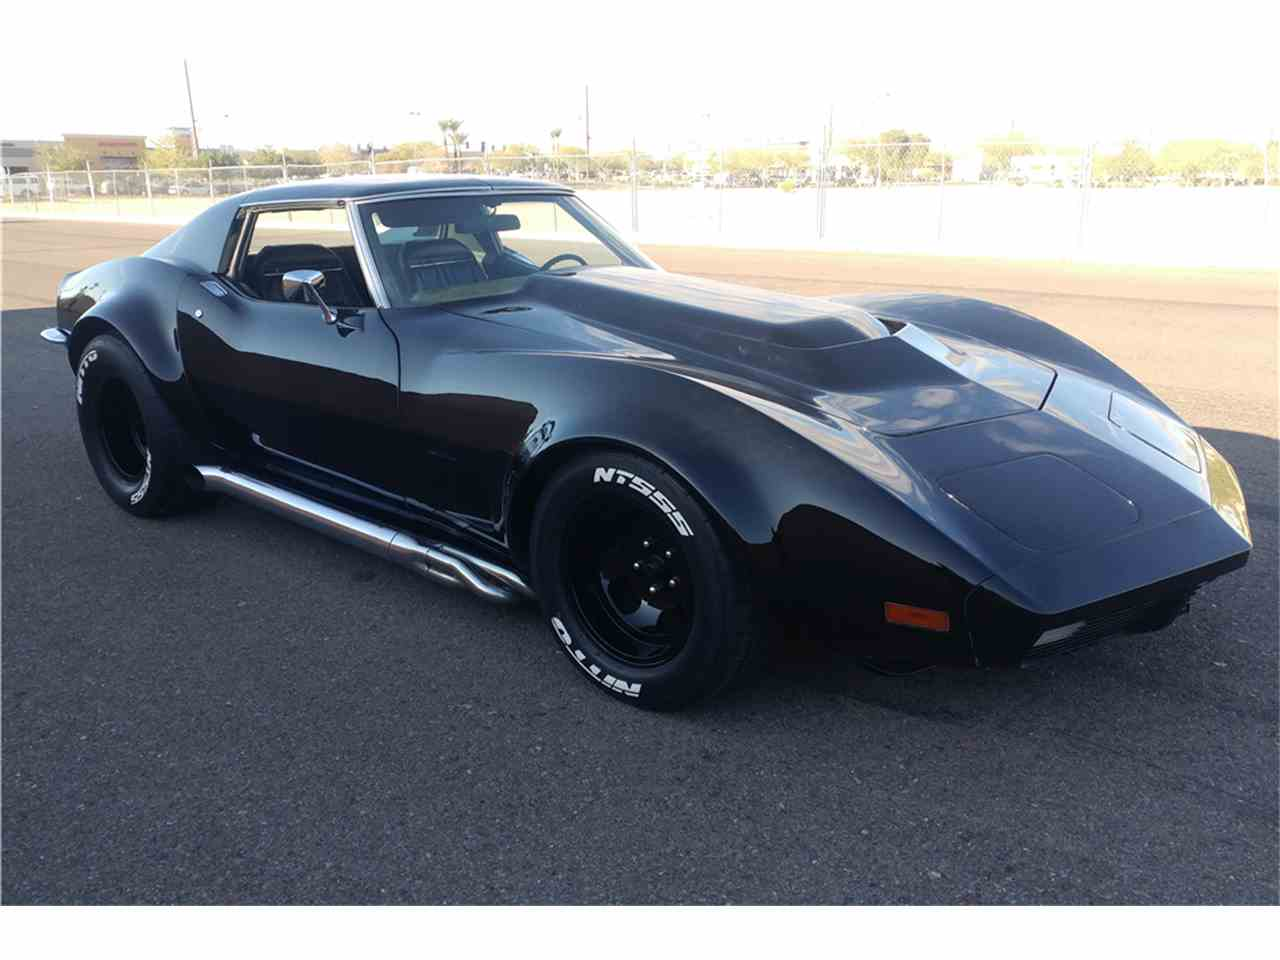 Corvette Stingray Top Speed >> 1973 Chevrolet Corvette for Sale | ClassicCars.com | CC-1052529